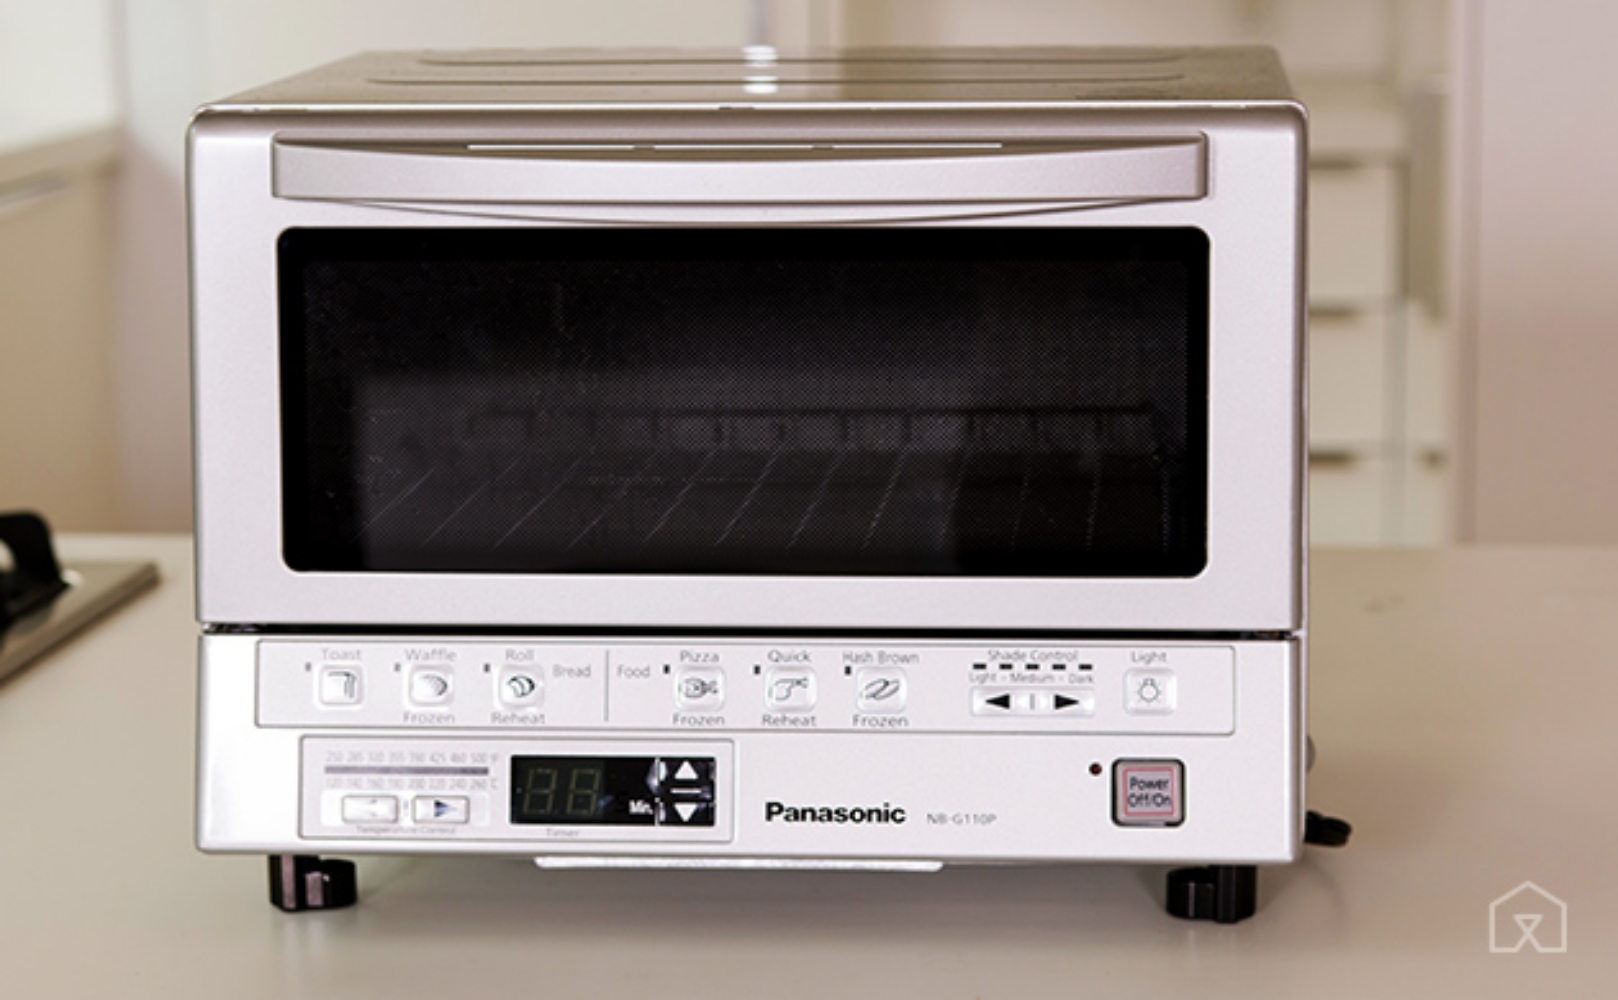 x01-toaster-oven-panasonic-flashxpress-630